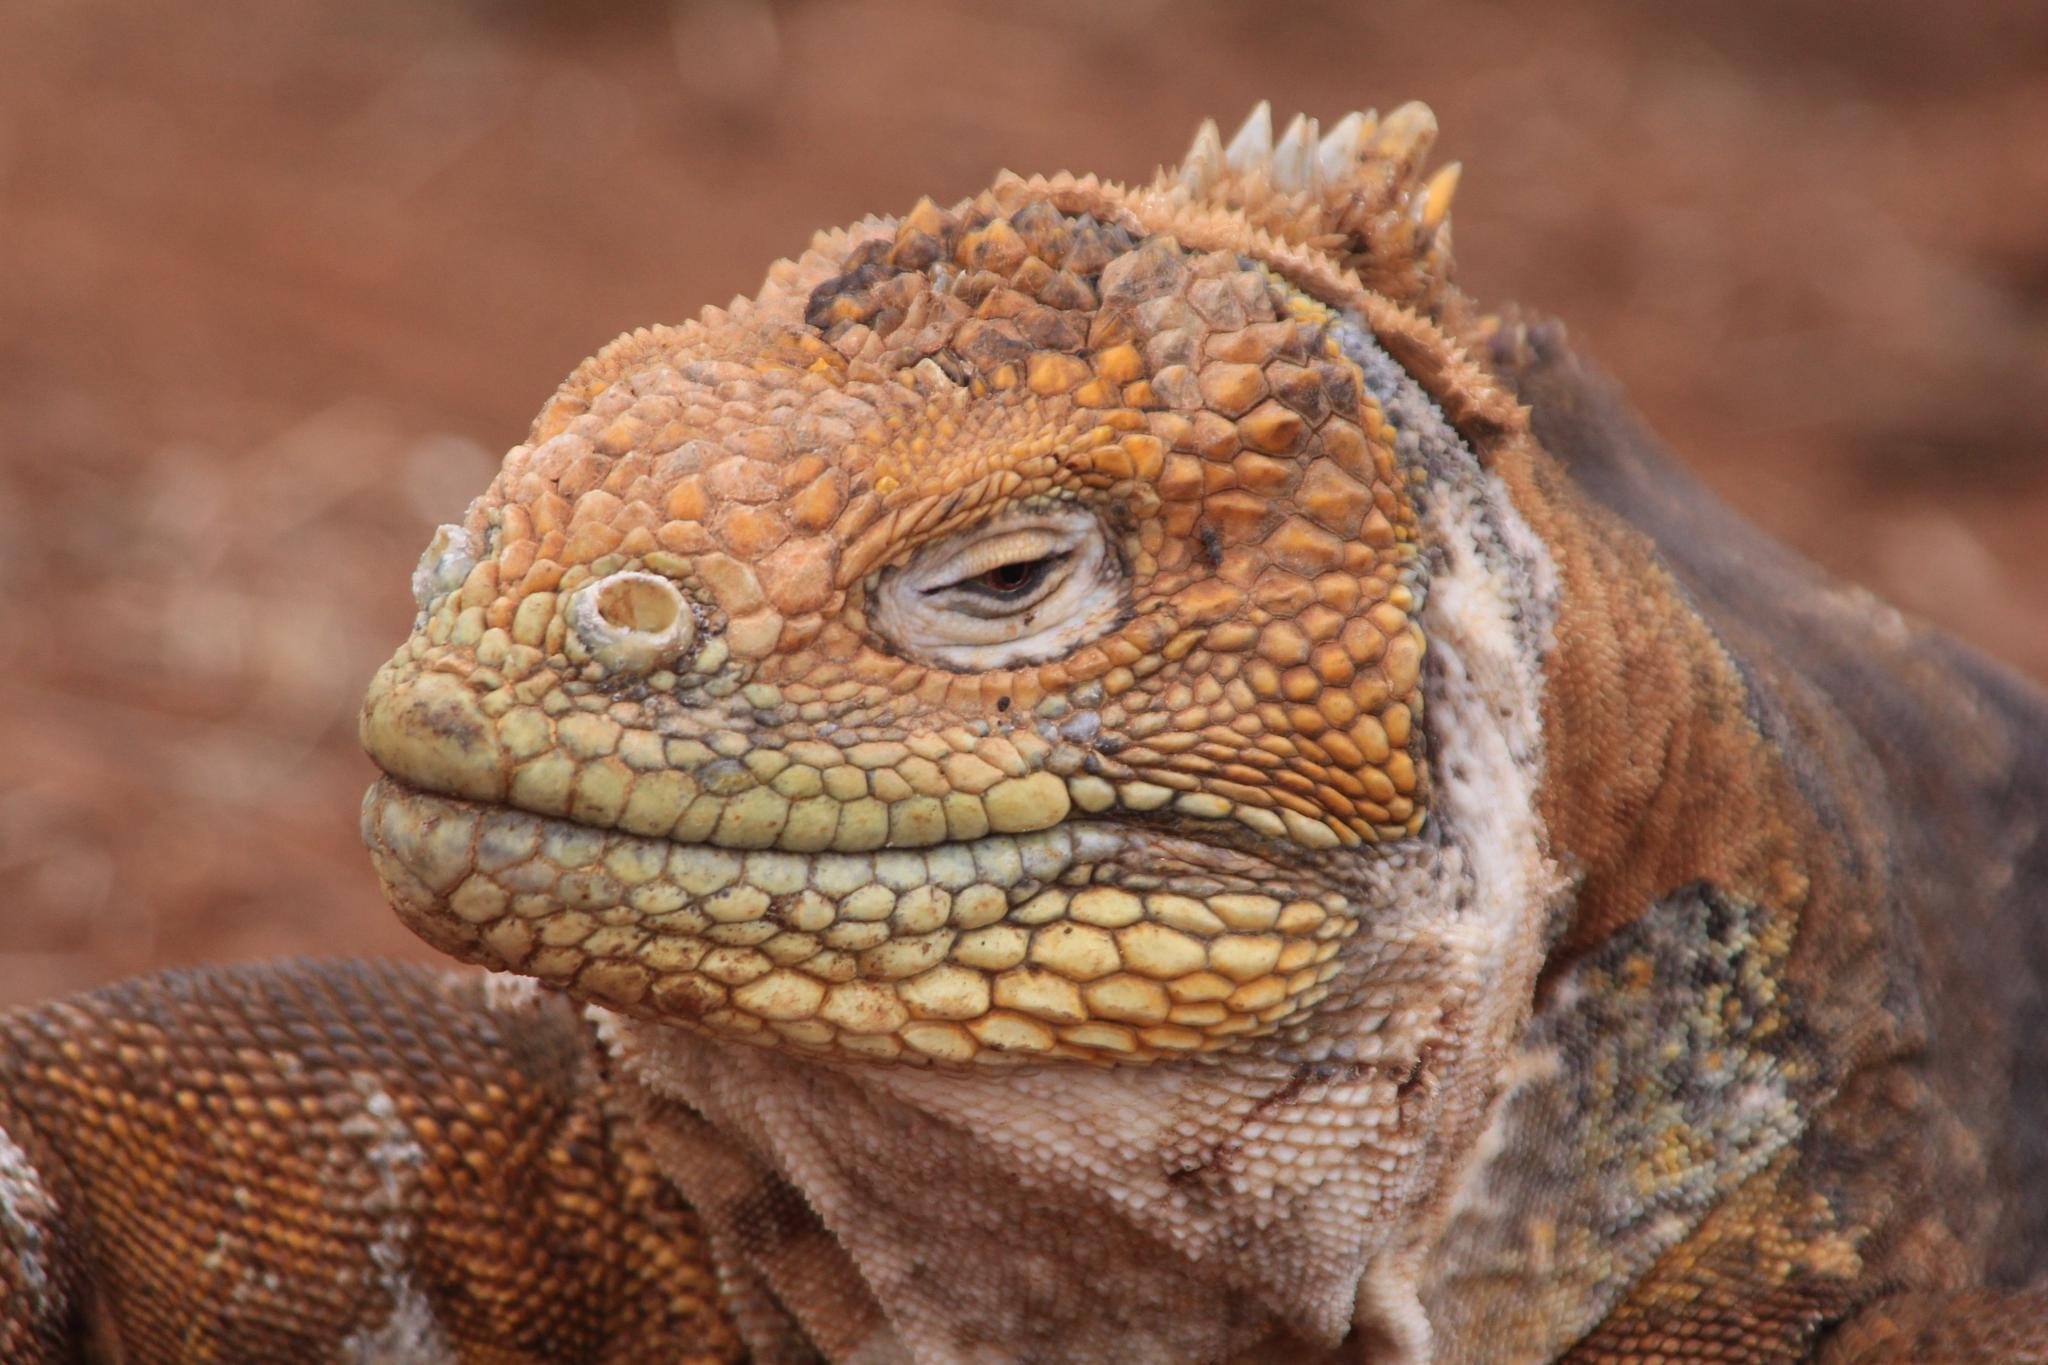 Land Iguana by robin.smith.3150